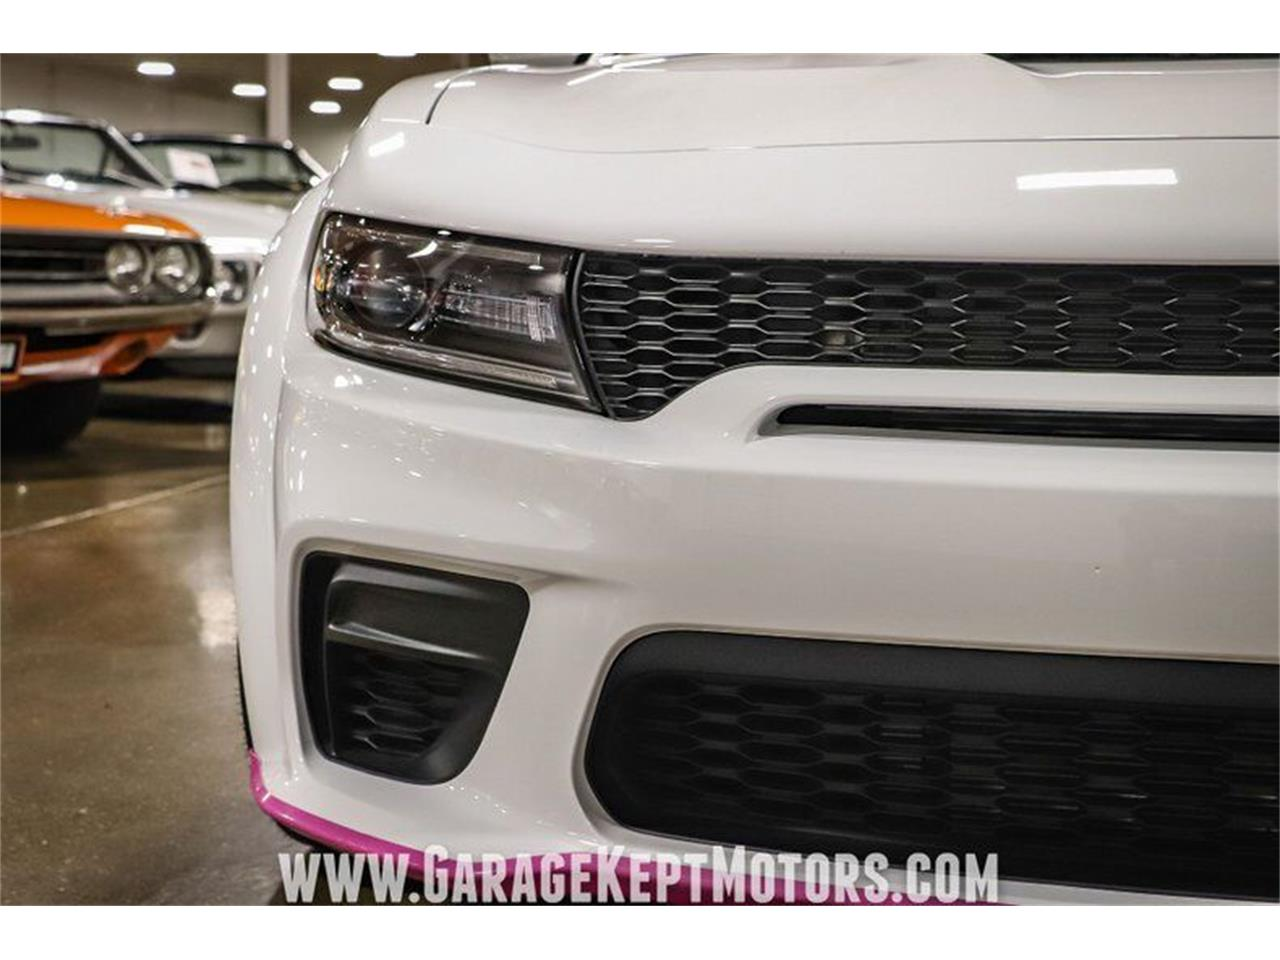 2020 Dodge Charger (CC-1361294) for sale in Grand Rapids, Michigan